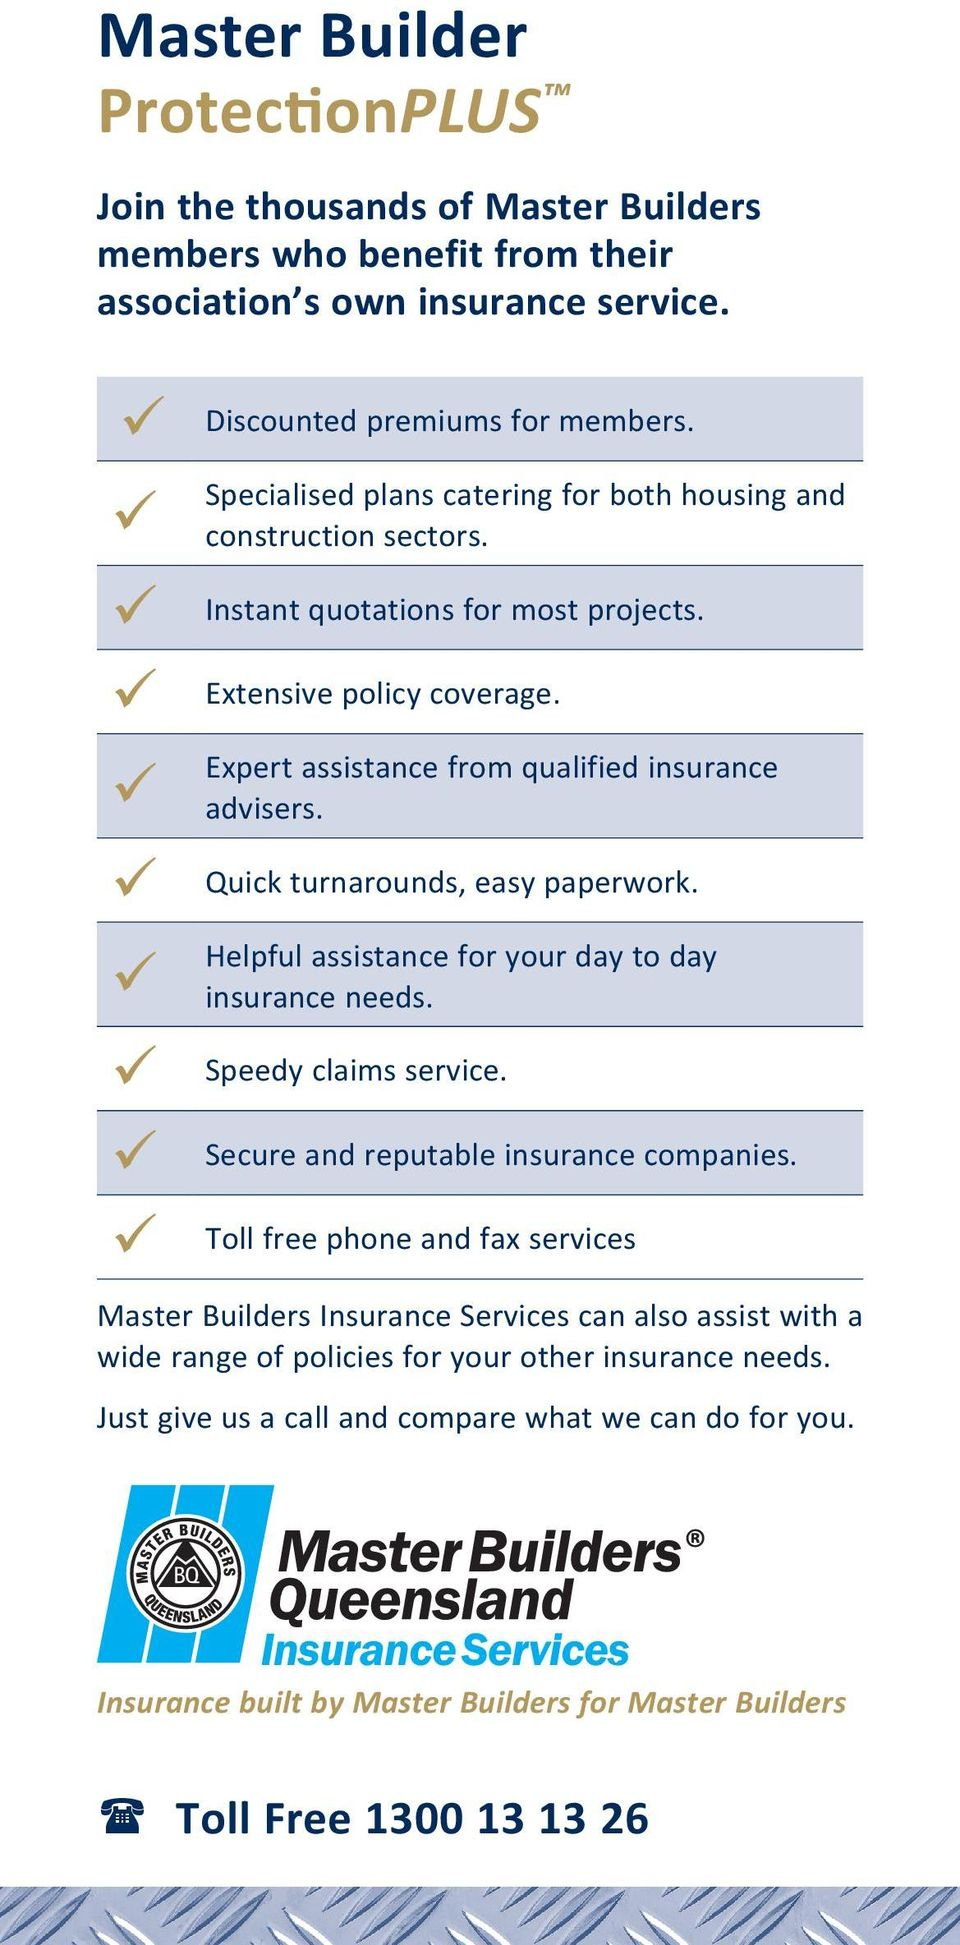 Expert assistance from qualified insurance advisers. Quick turnarounds, easy paperwork. Helpful assistance for your day to day insurance needs. Speedy claims service.